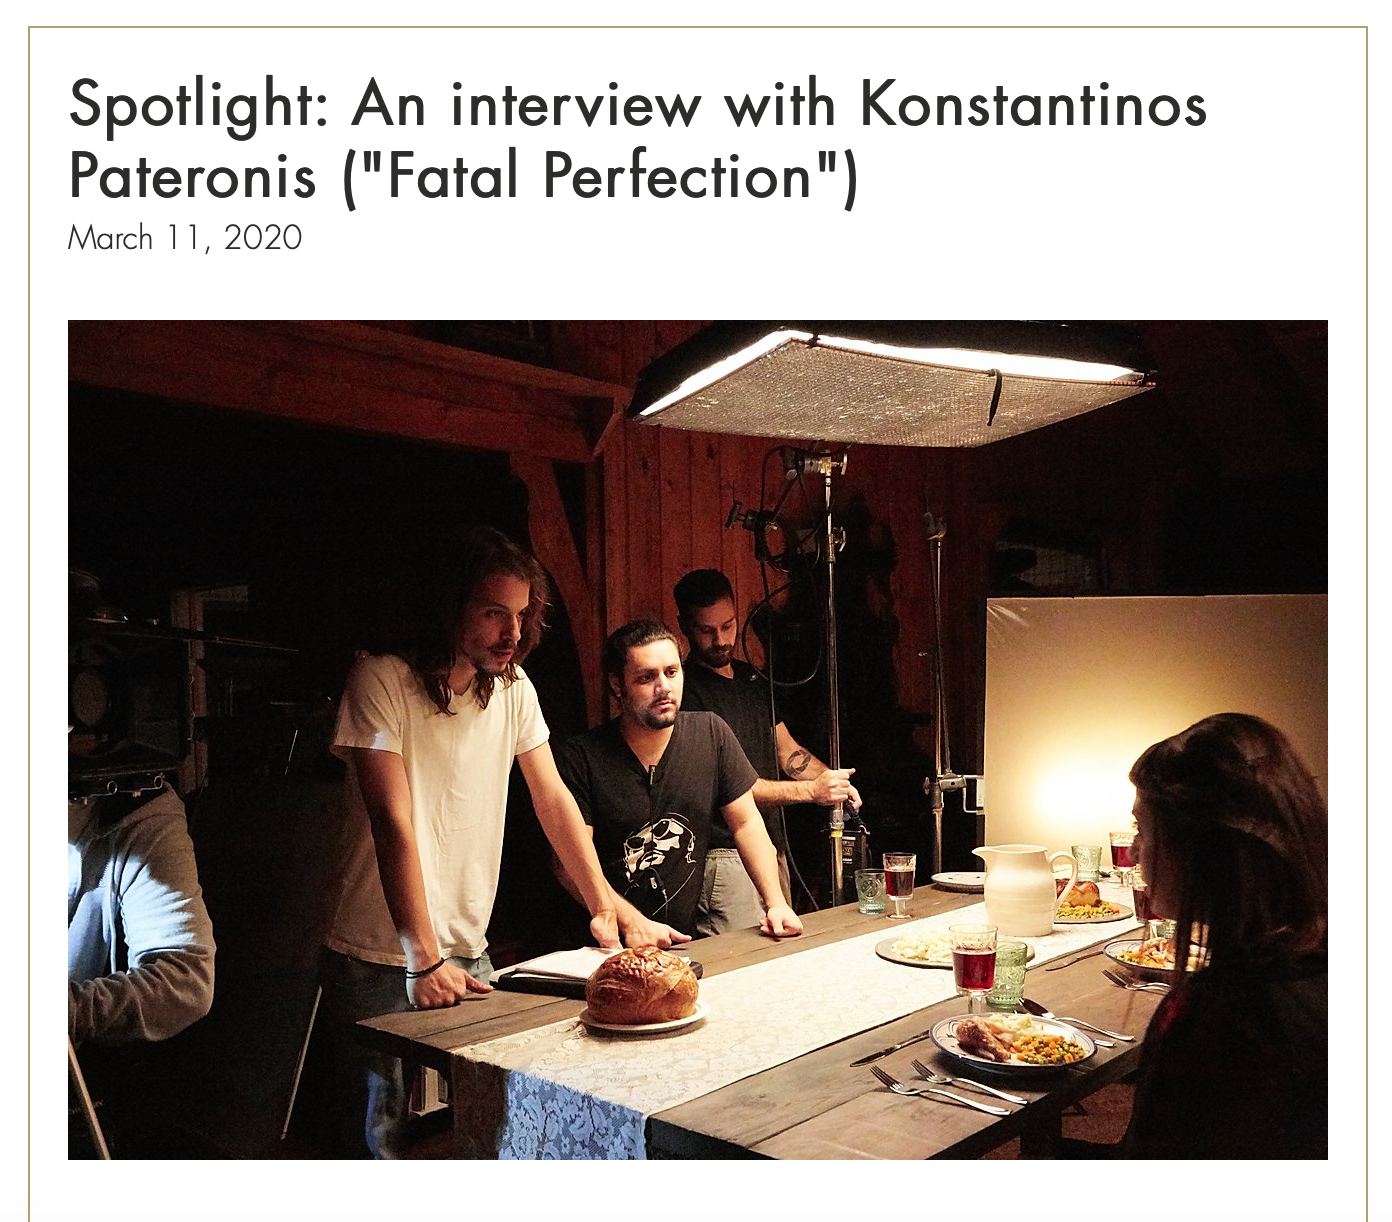 Los Angeles Film Awards Interview - Fatal Perfection (March 11, 2020)